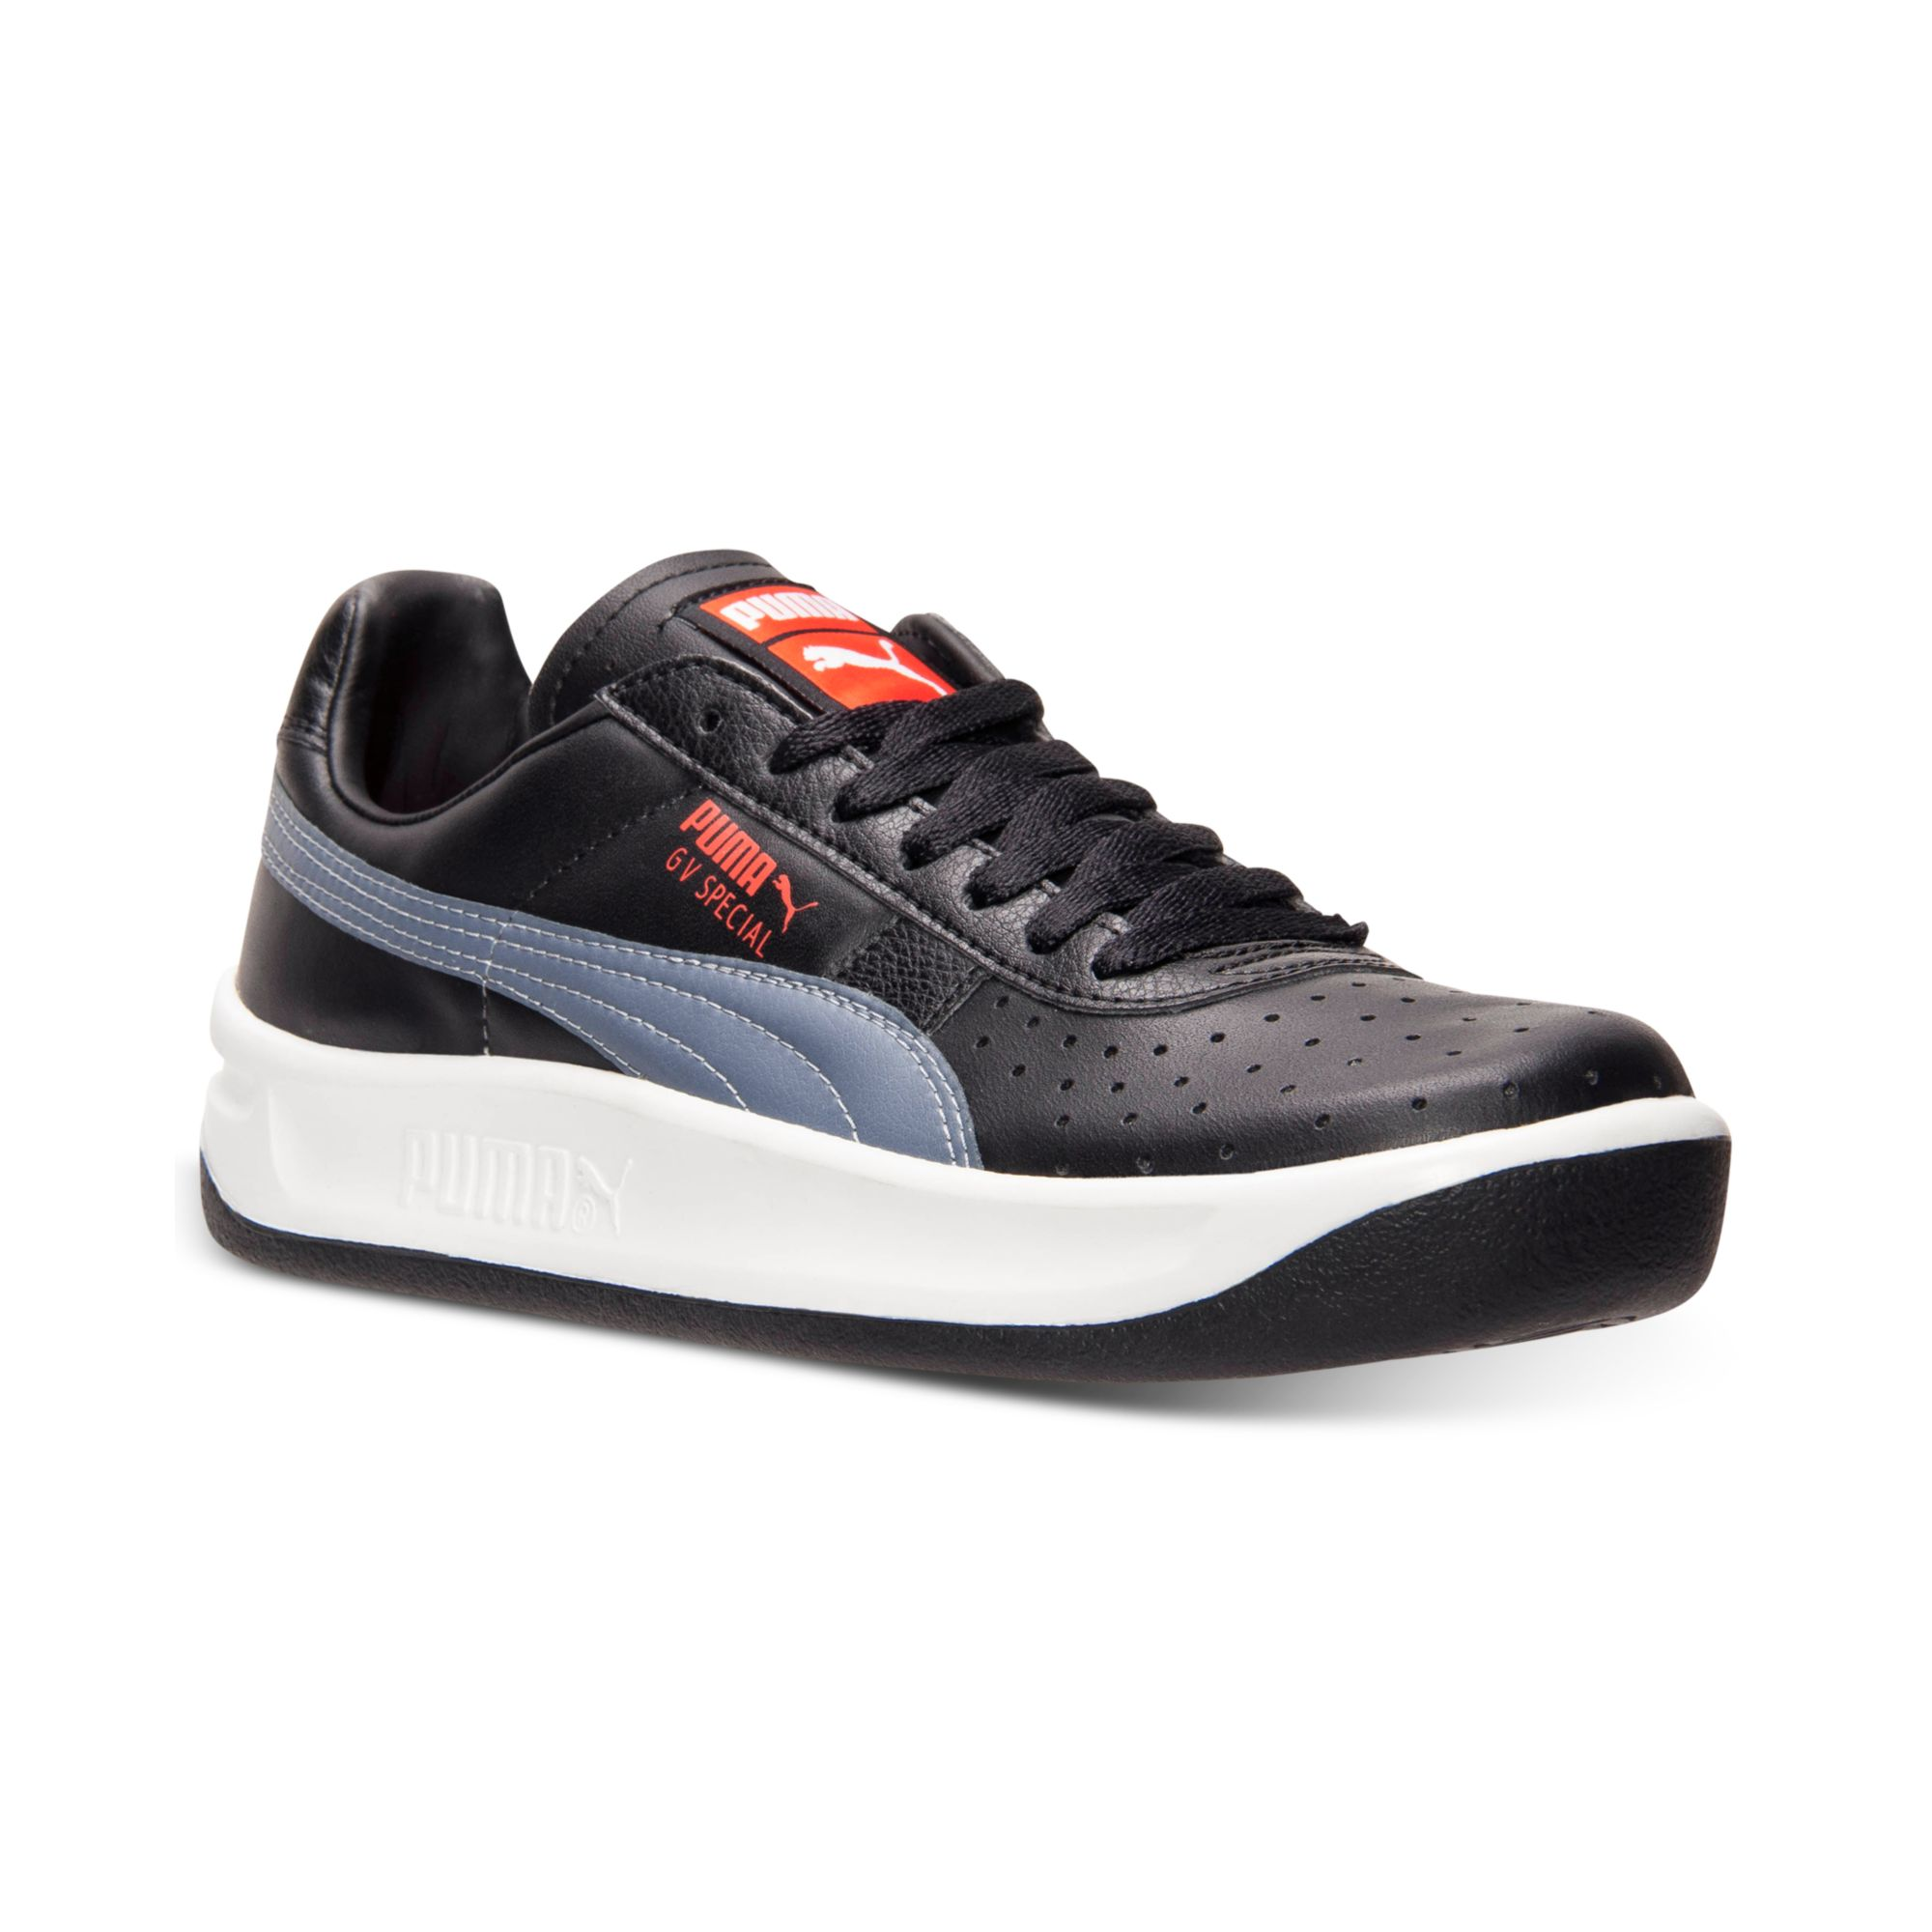 0a12ab7836f2df Lyst - PUMA Mens The Gv Special Casual Sneakers From Finish Line in ...